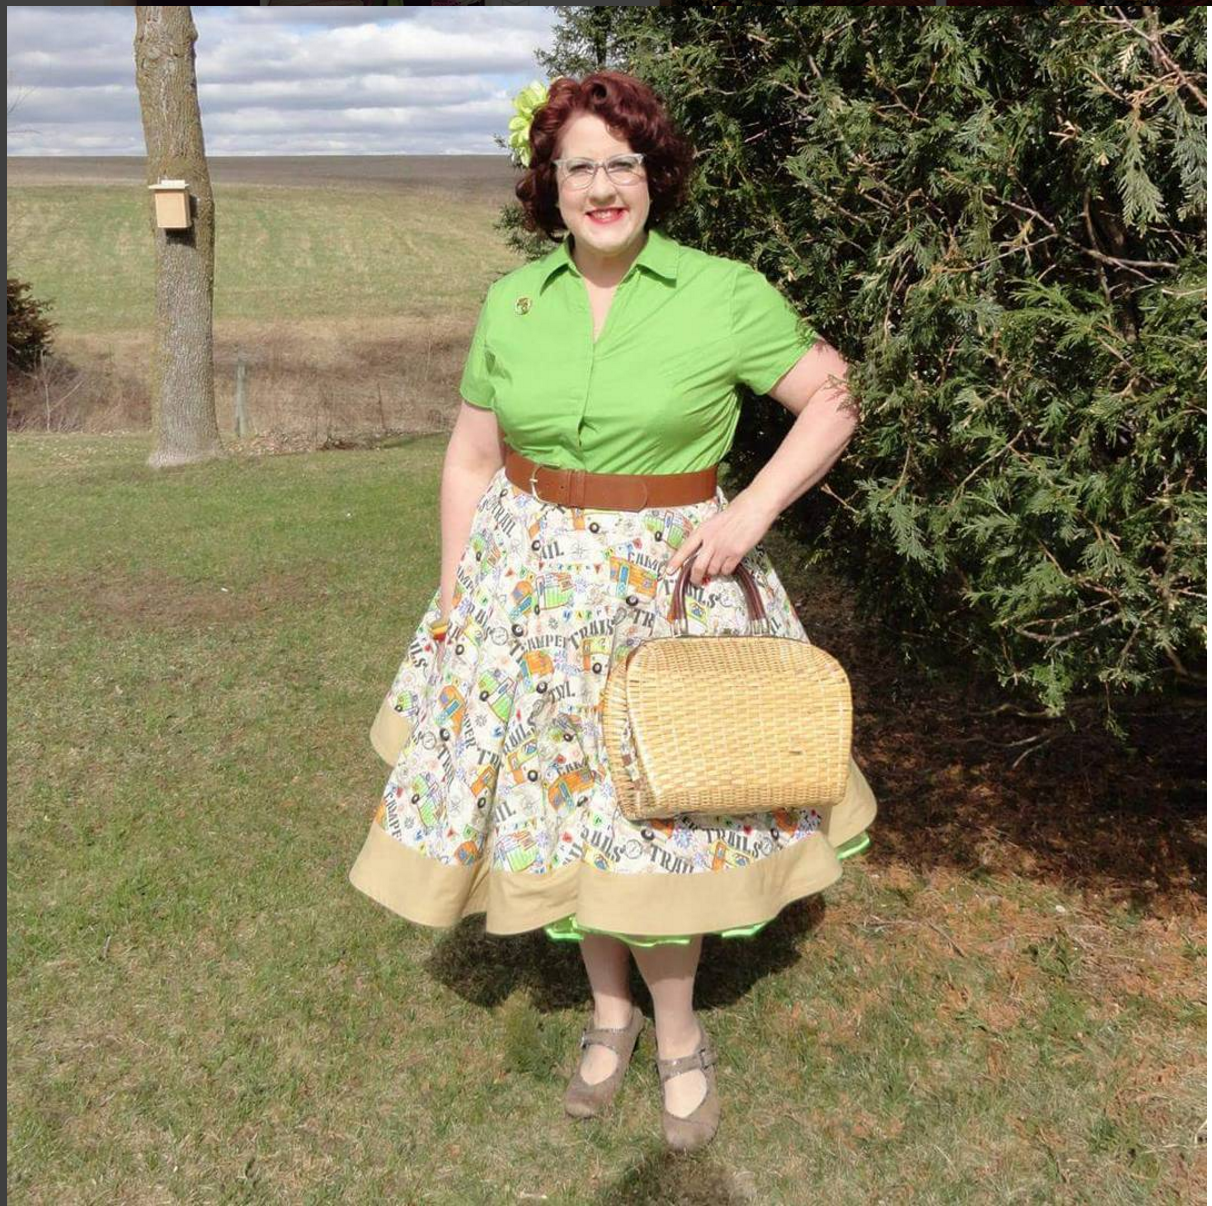 YouTuber Vintage Camper Gal is proving that you don't need a long long trailer to look like perfection...you just need a custom made vintage camper skirt!